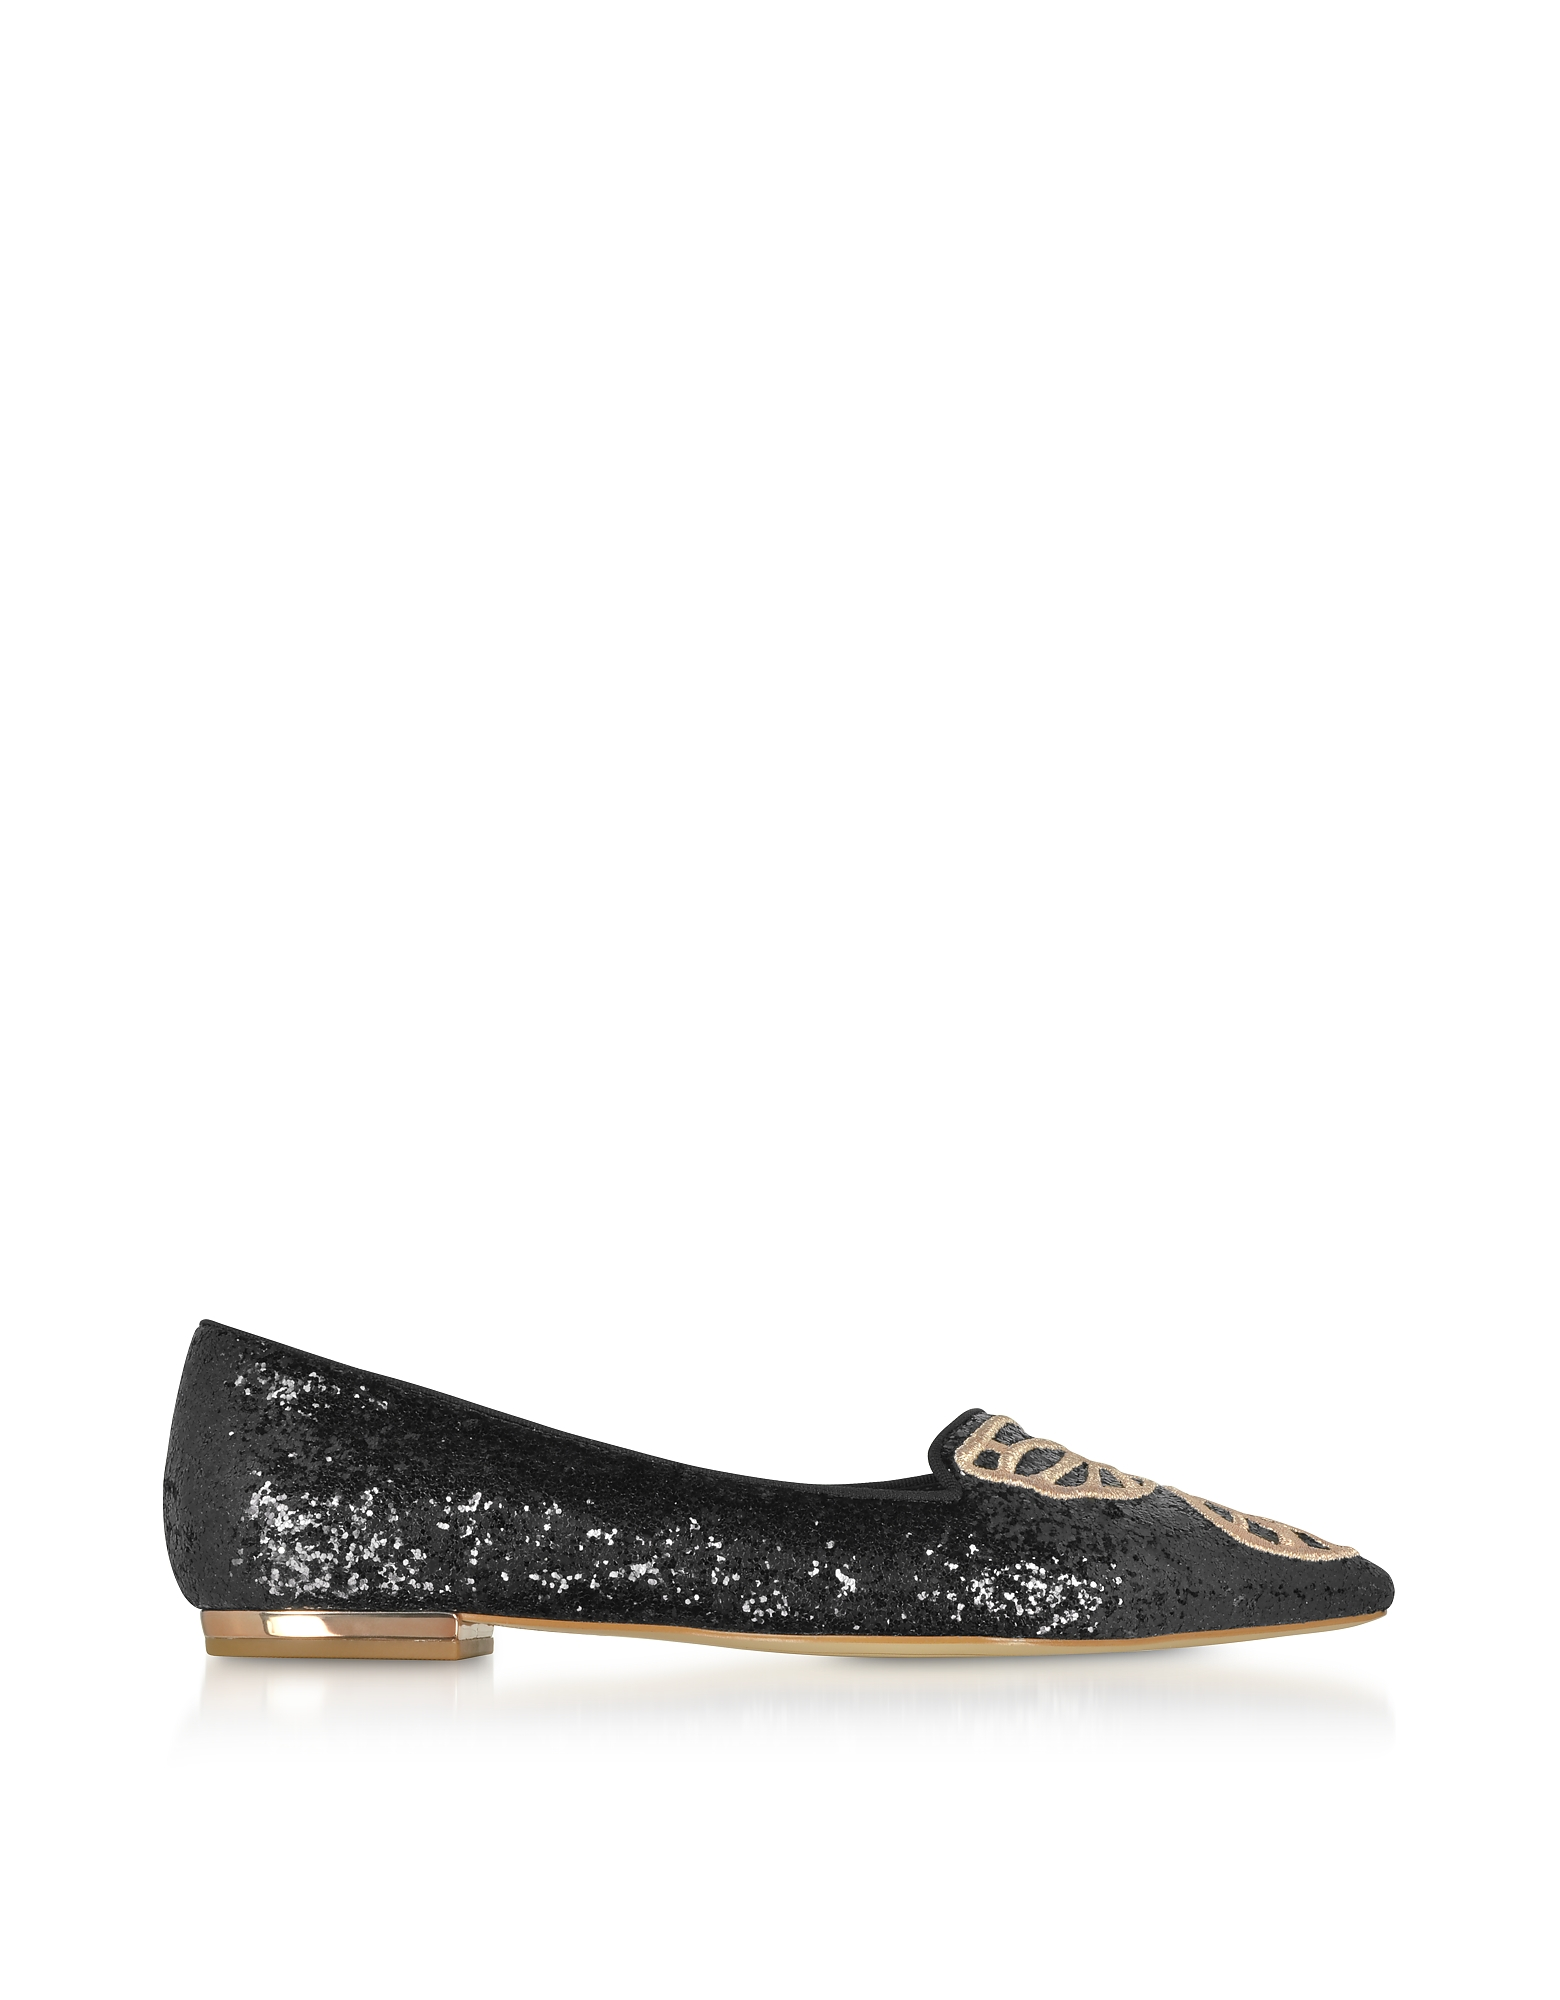 Black and Rose Gold Bibi Butterfly Flat Ballerinas